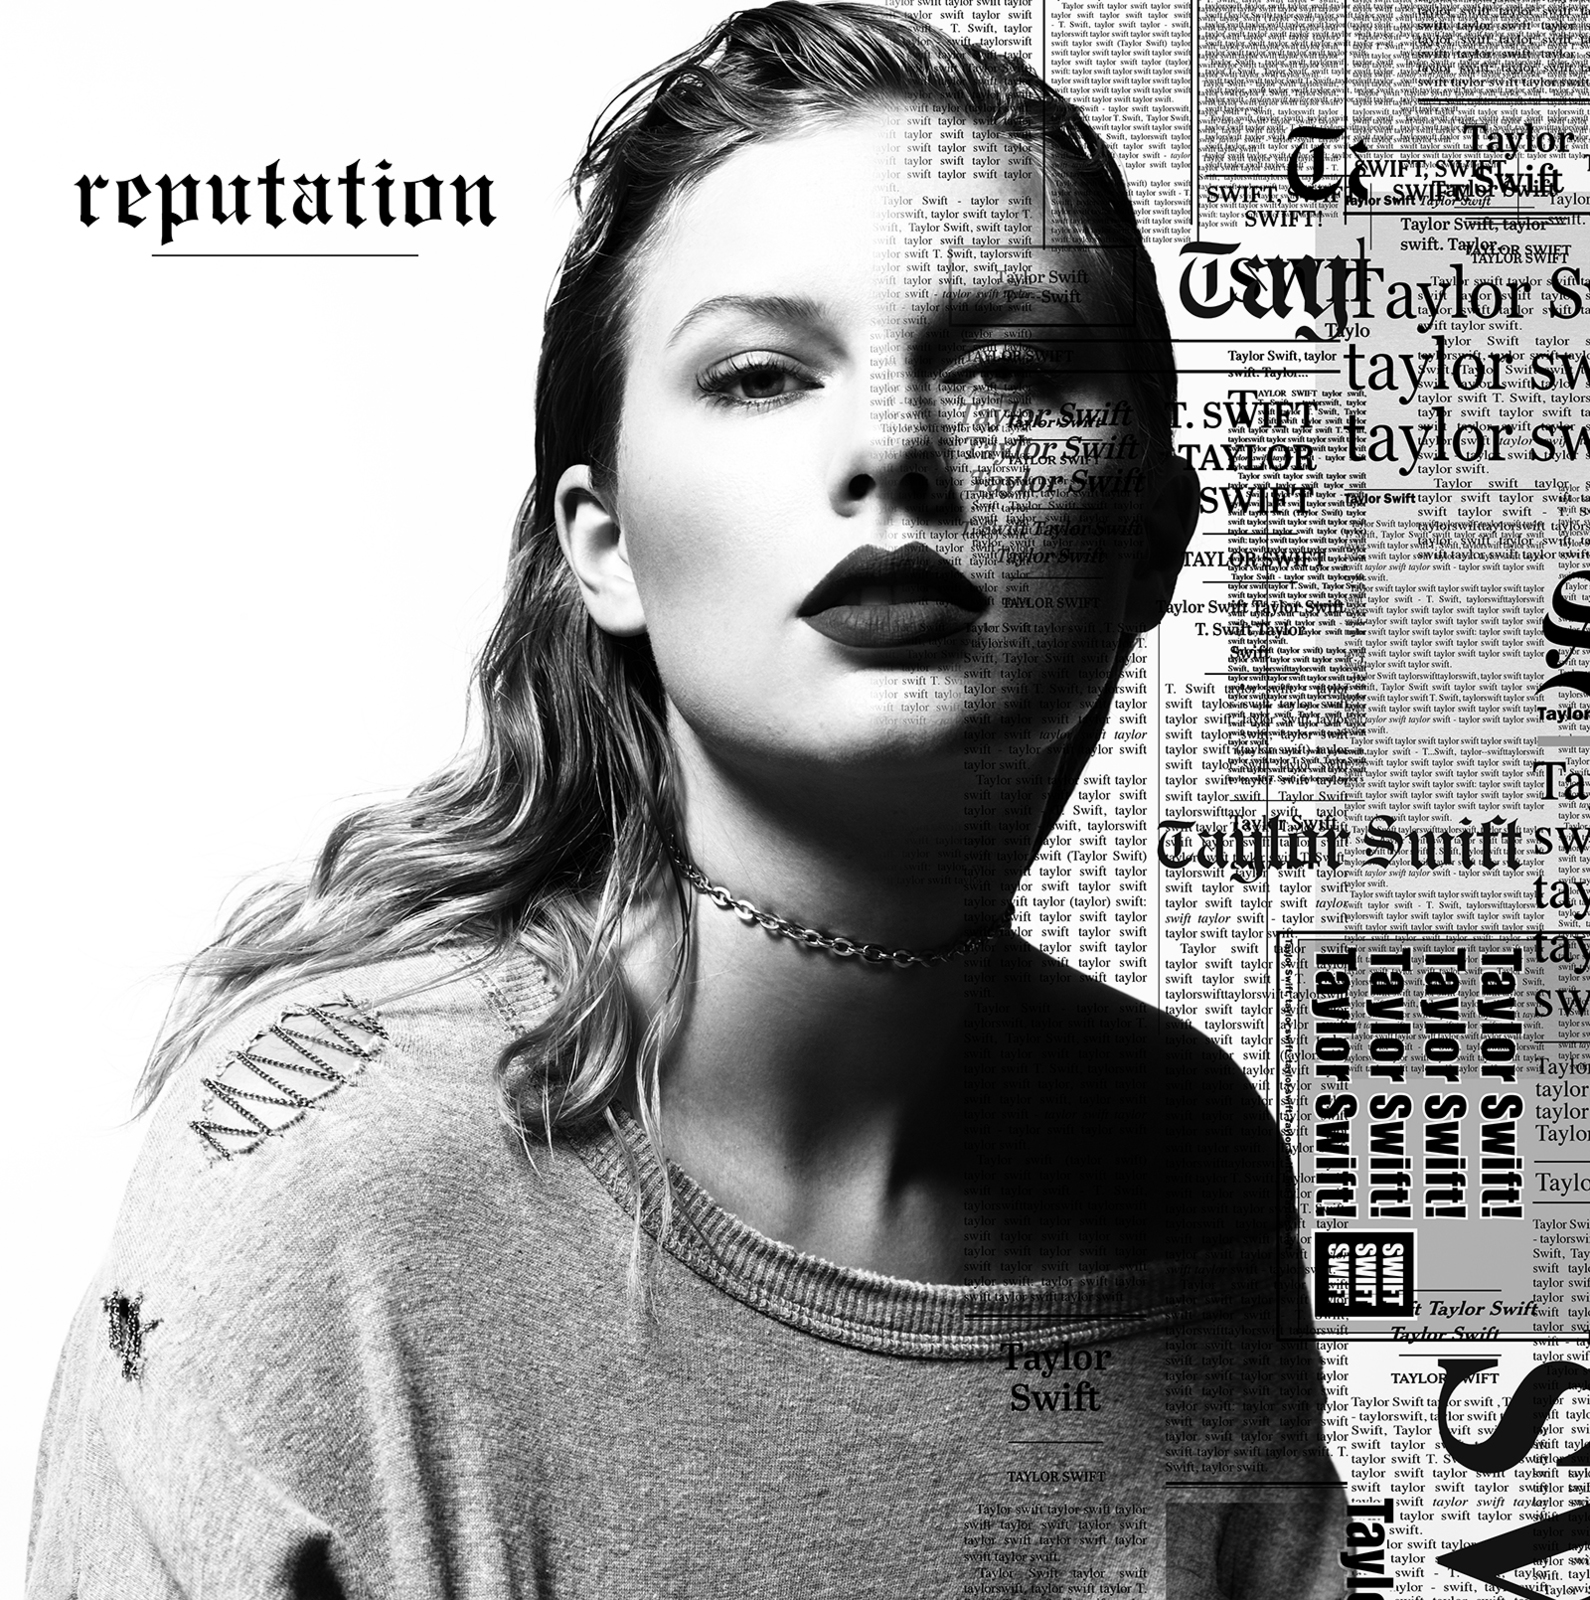 Reputation by Taylor Swift image